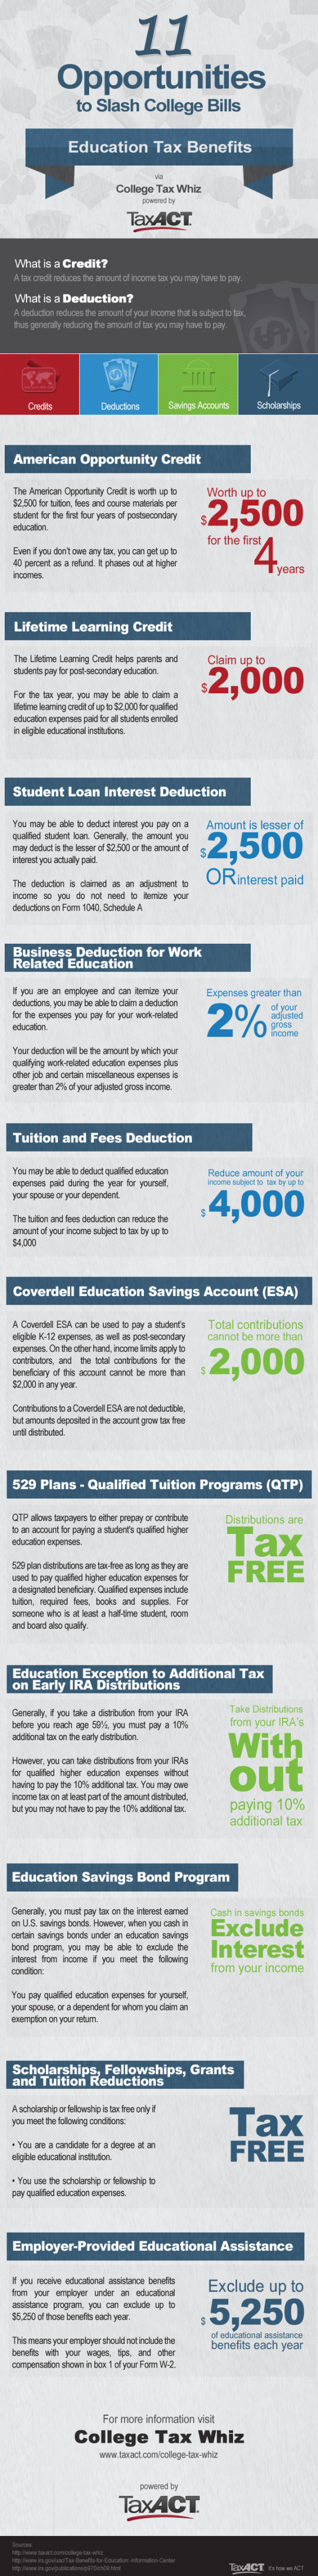 11 Opportunities to Slash College Bills with Education Tax Benefits